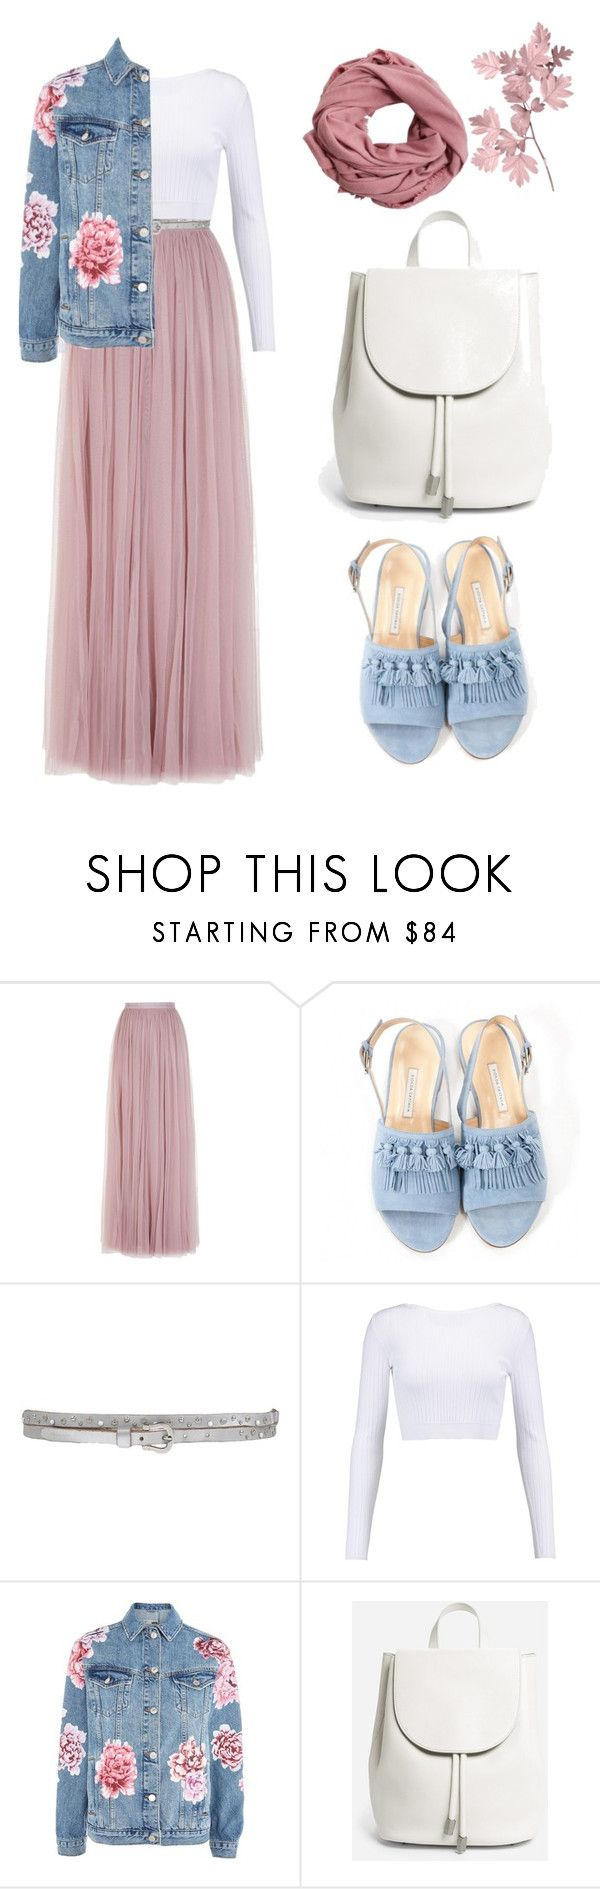 """""""Being covered"""" by lostuser ❤ liked on Polyvore featuring Needle & Thread, Bionda Castana, Twin-Set, Cushnie Et Ochs, Topshop, Everlane and MANGO"""